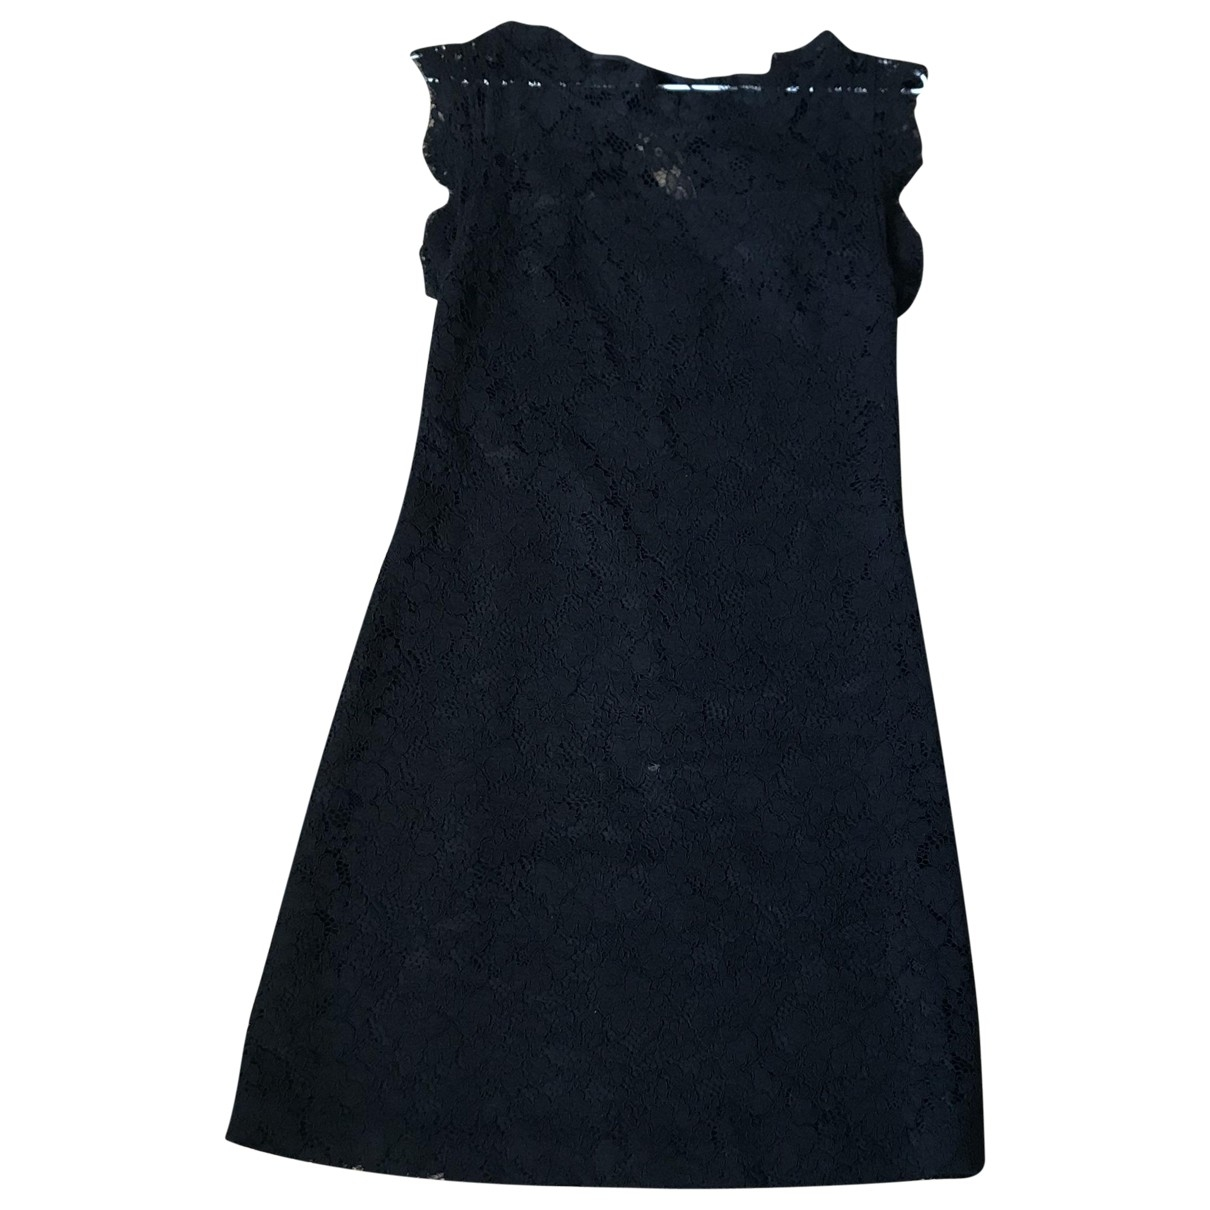 Claudie Pierlot \N Black Cotton dress for Women 34 FR